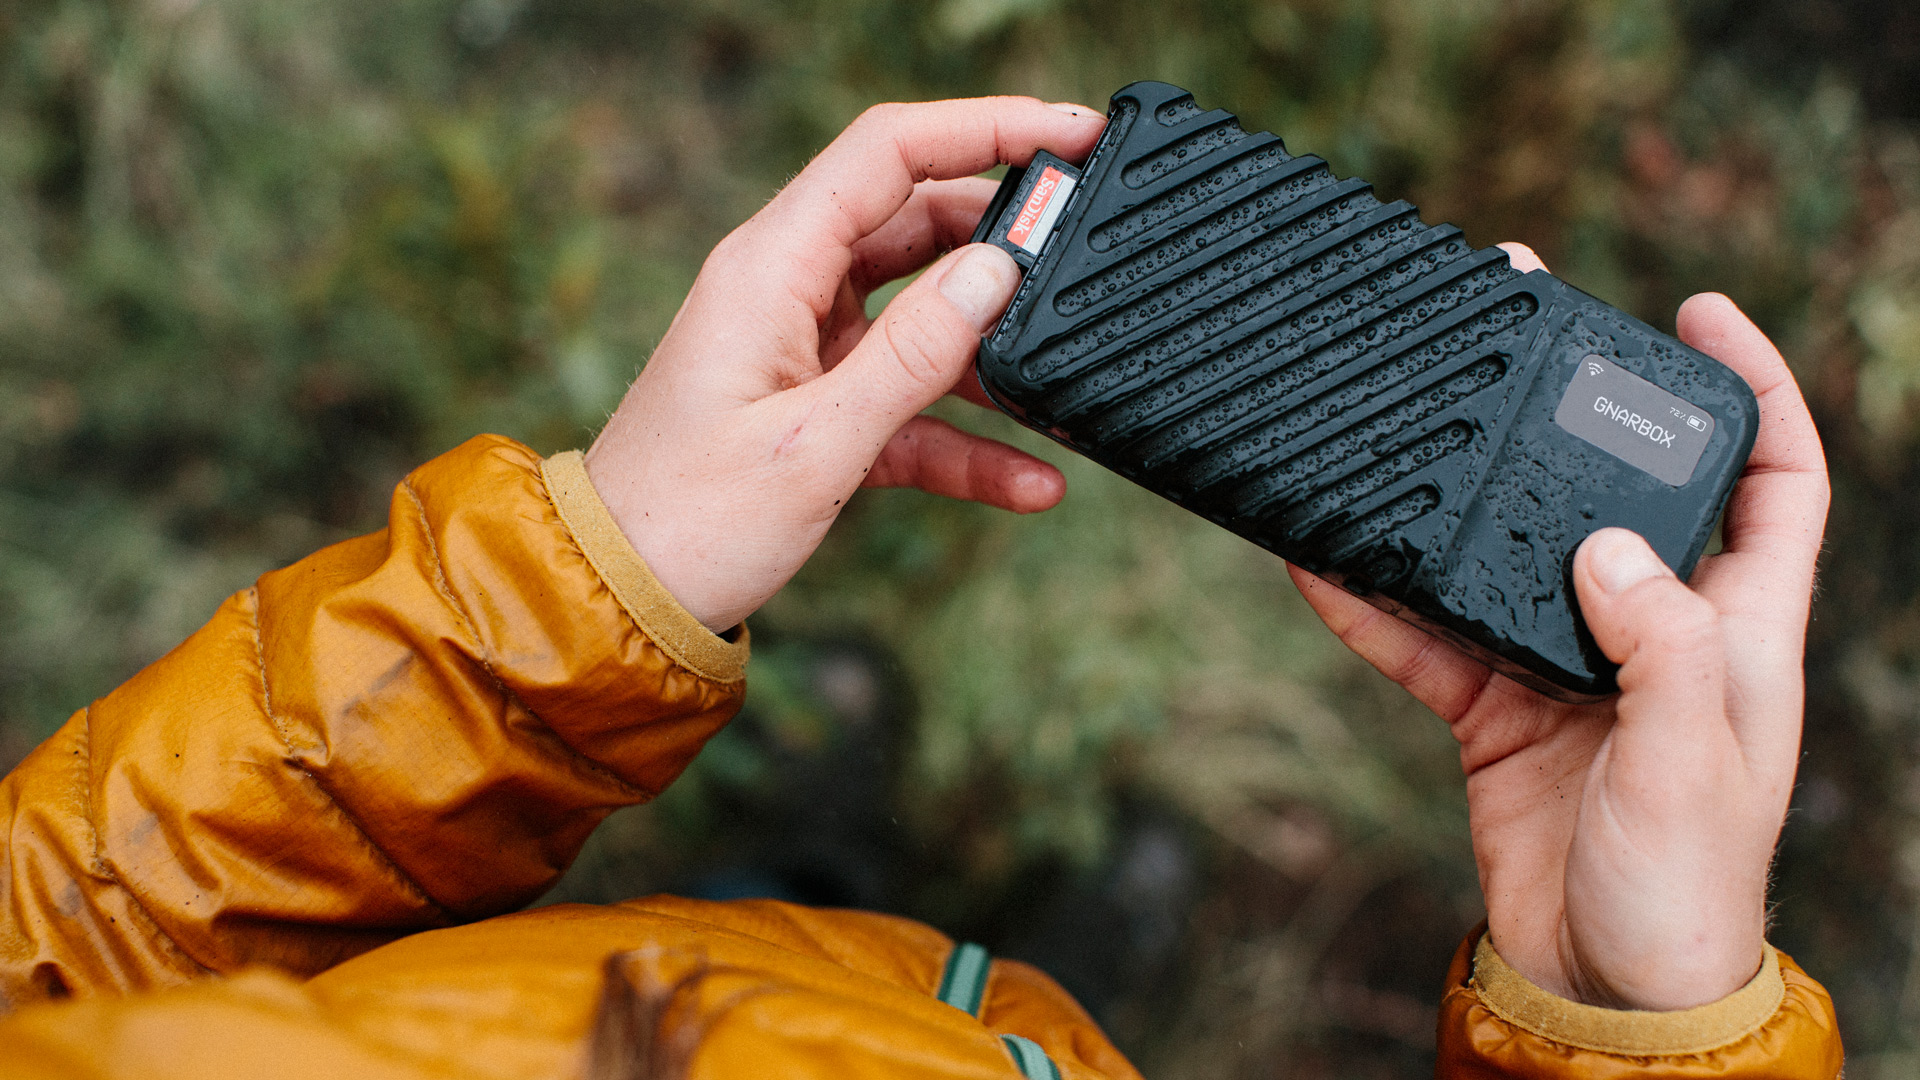 Gnarbox 2.0 SSD Now Globally Available – Next Gen Rugged Portable Backup Storage